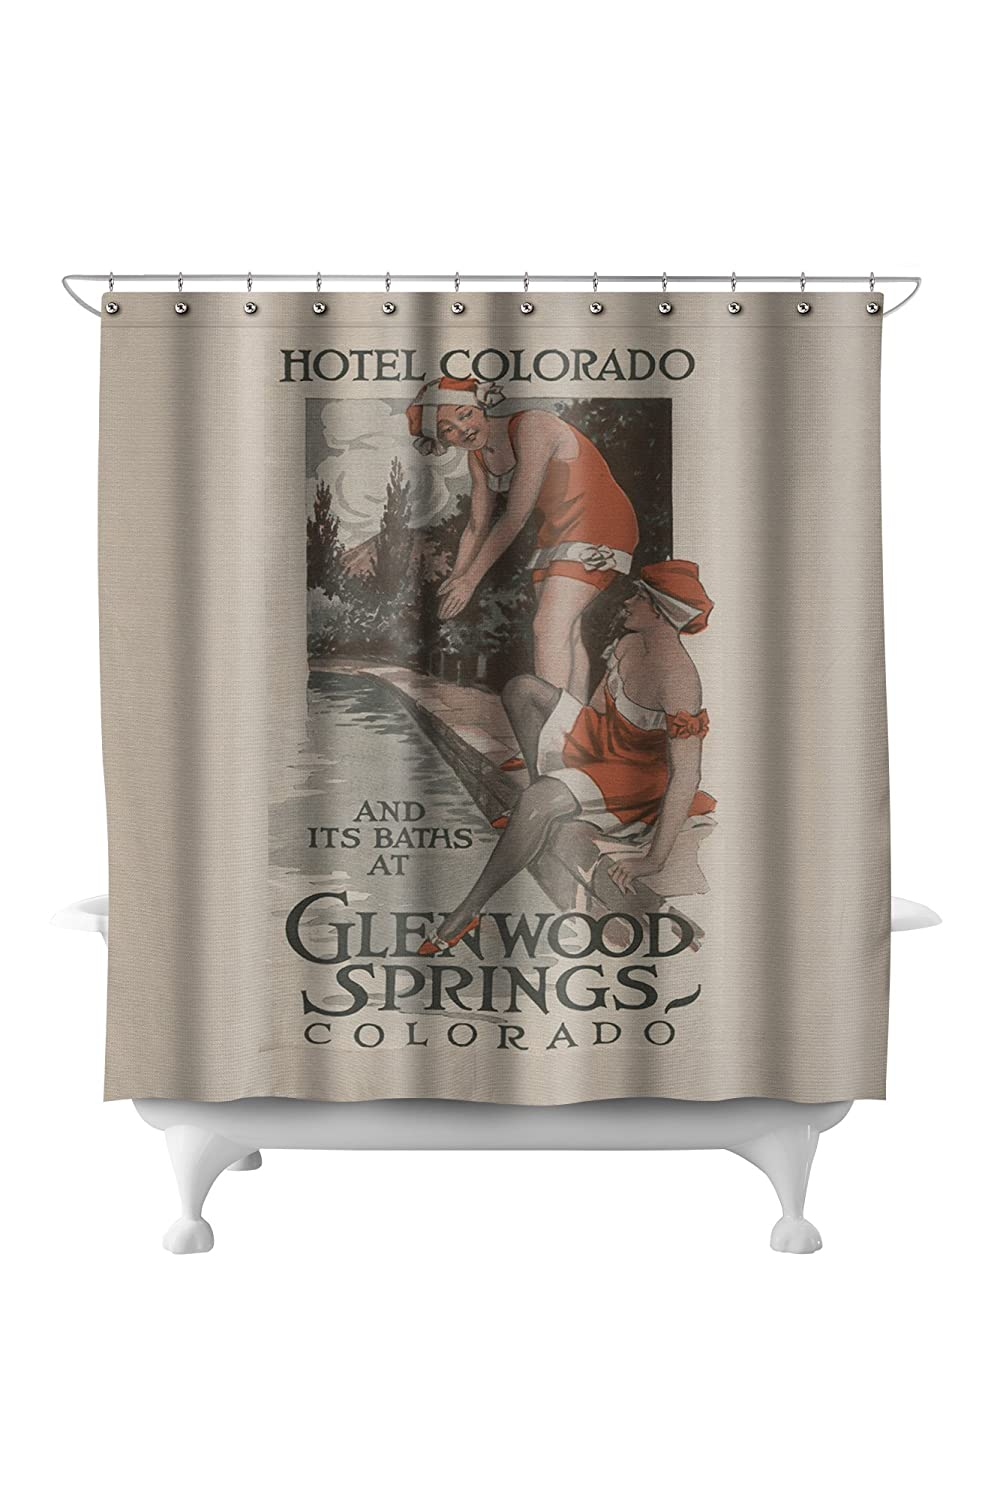 Amazon.com: Glenwood Springs, Colorado - Hotel Colorado and Baths Poster (71x74 Polyester Shower Curtain): Home & Kitchen